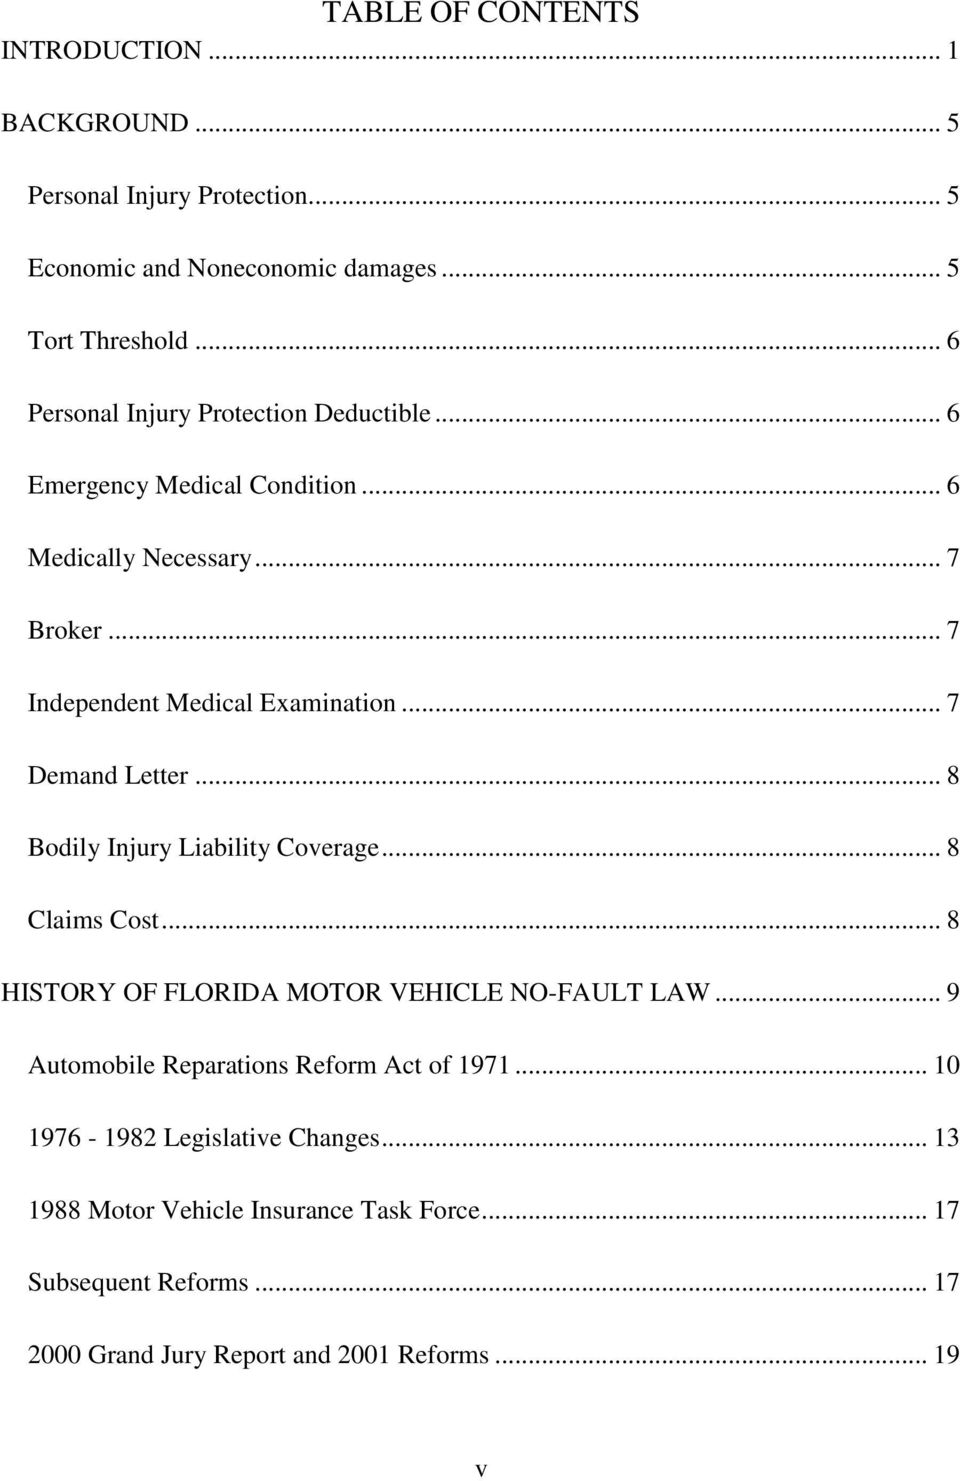 .. 7 Demand Letter... 8 Bodily Injury Liability Coverage... 8 Claims Cost... 8 HISTORY OF FLORIDA MOTOR VEHICLE NO-FAULT LAW.